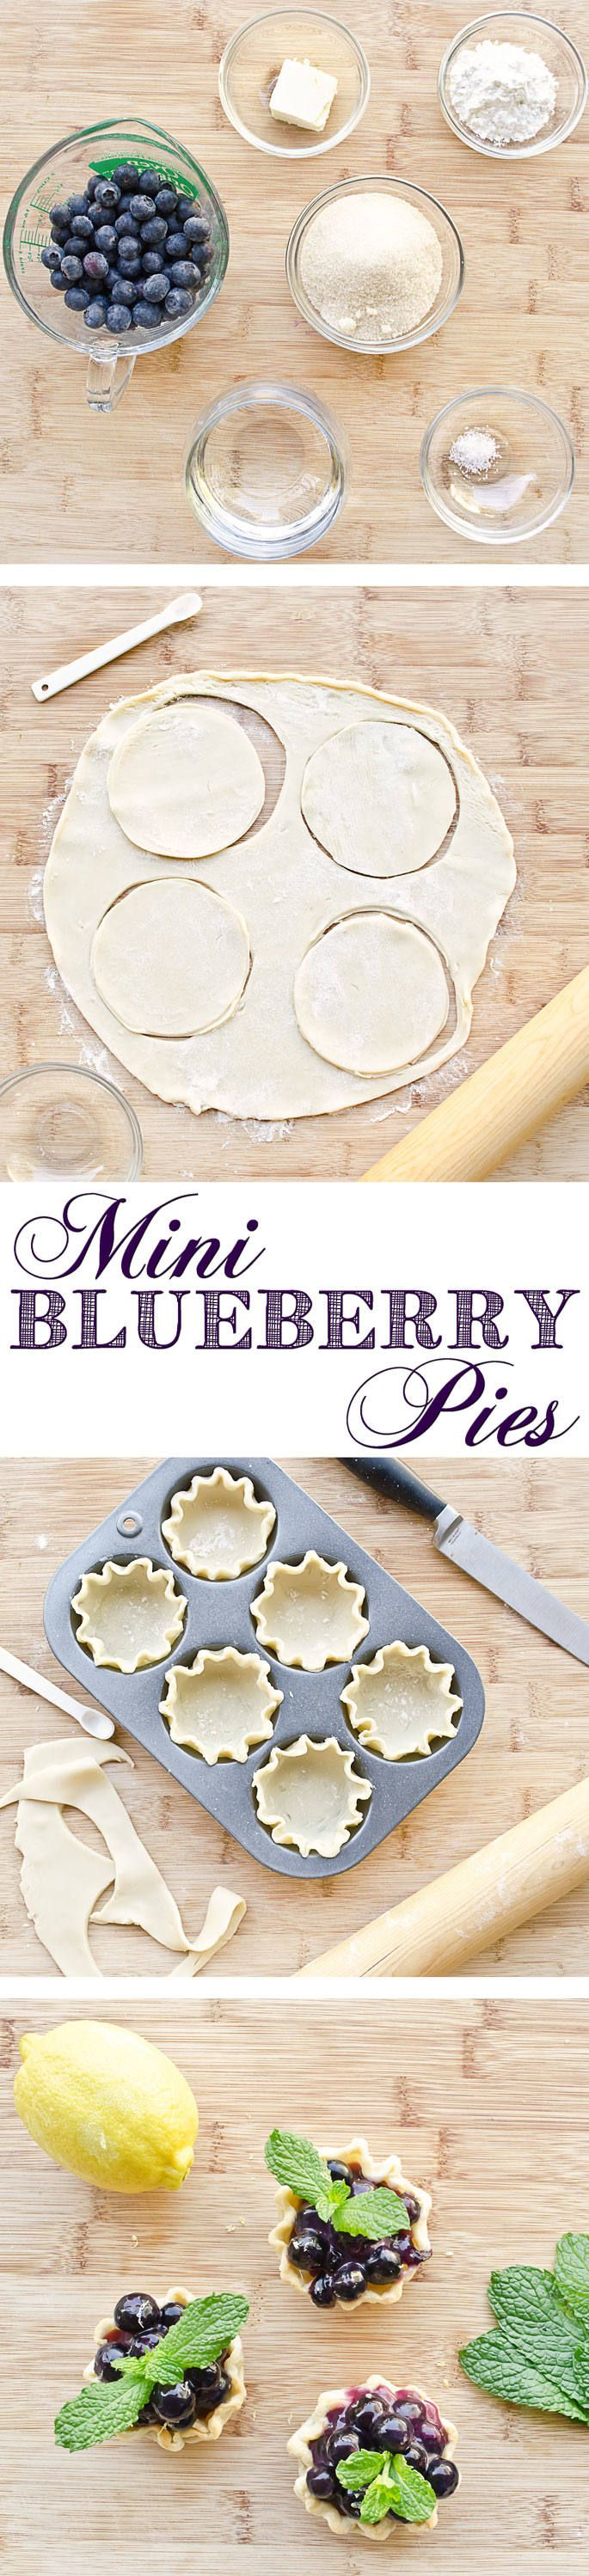 Easy to Make Mini Blueberry Pies. I love this easy, quick recipe to make sweet little blueberry pies.